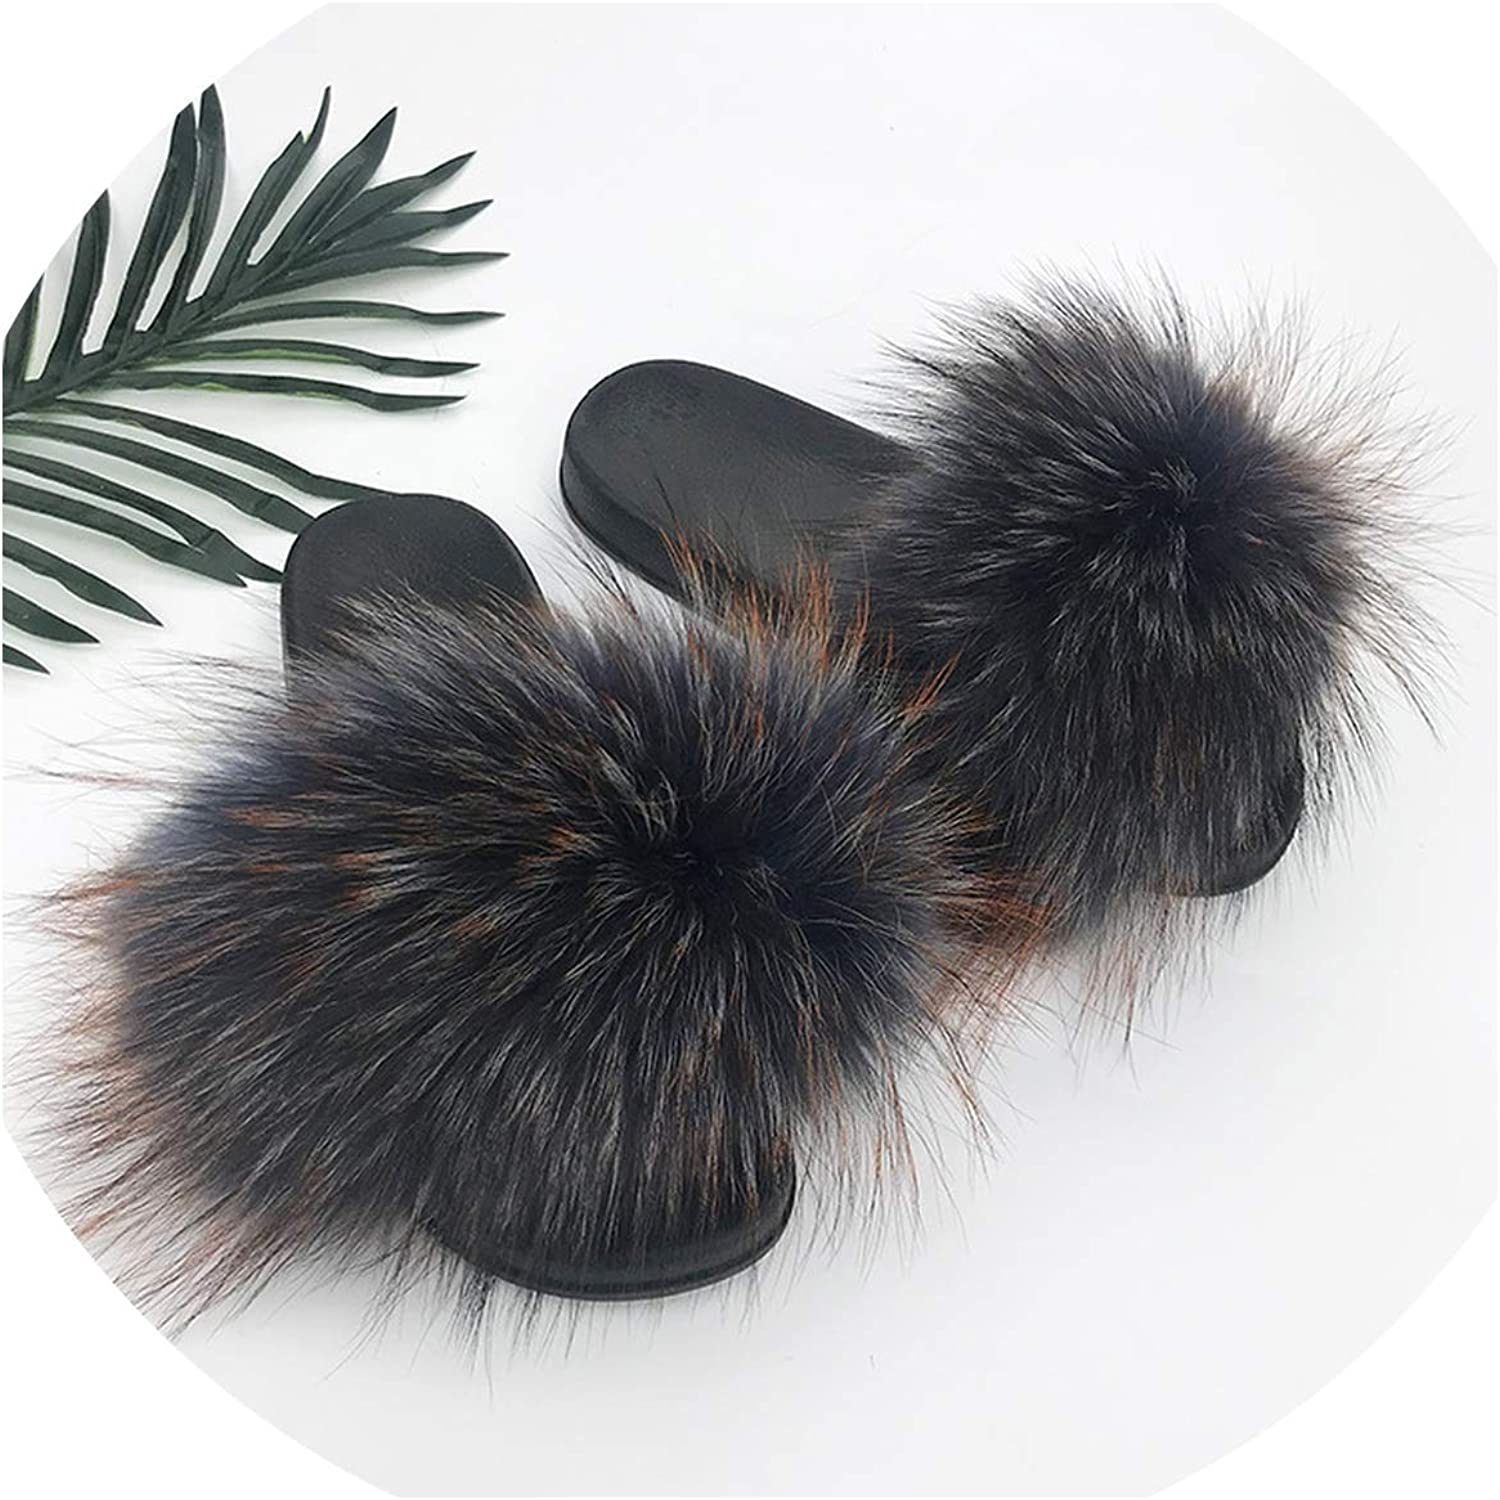 Just XiaoZhouZhou 28 colors Real Fur Slippers Women Fox Fluffy Sliders Comfort with Feathers Furry Summer Flats Sweet Ladies shoes Plus Size 36-45,3,91